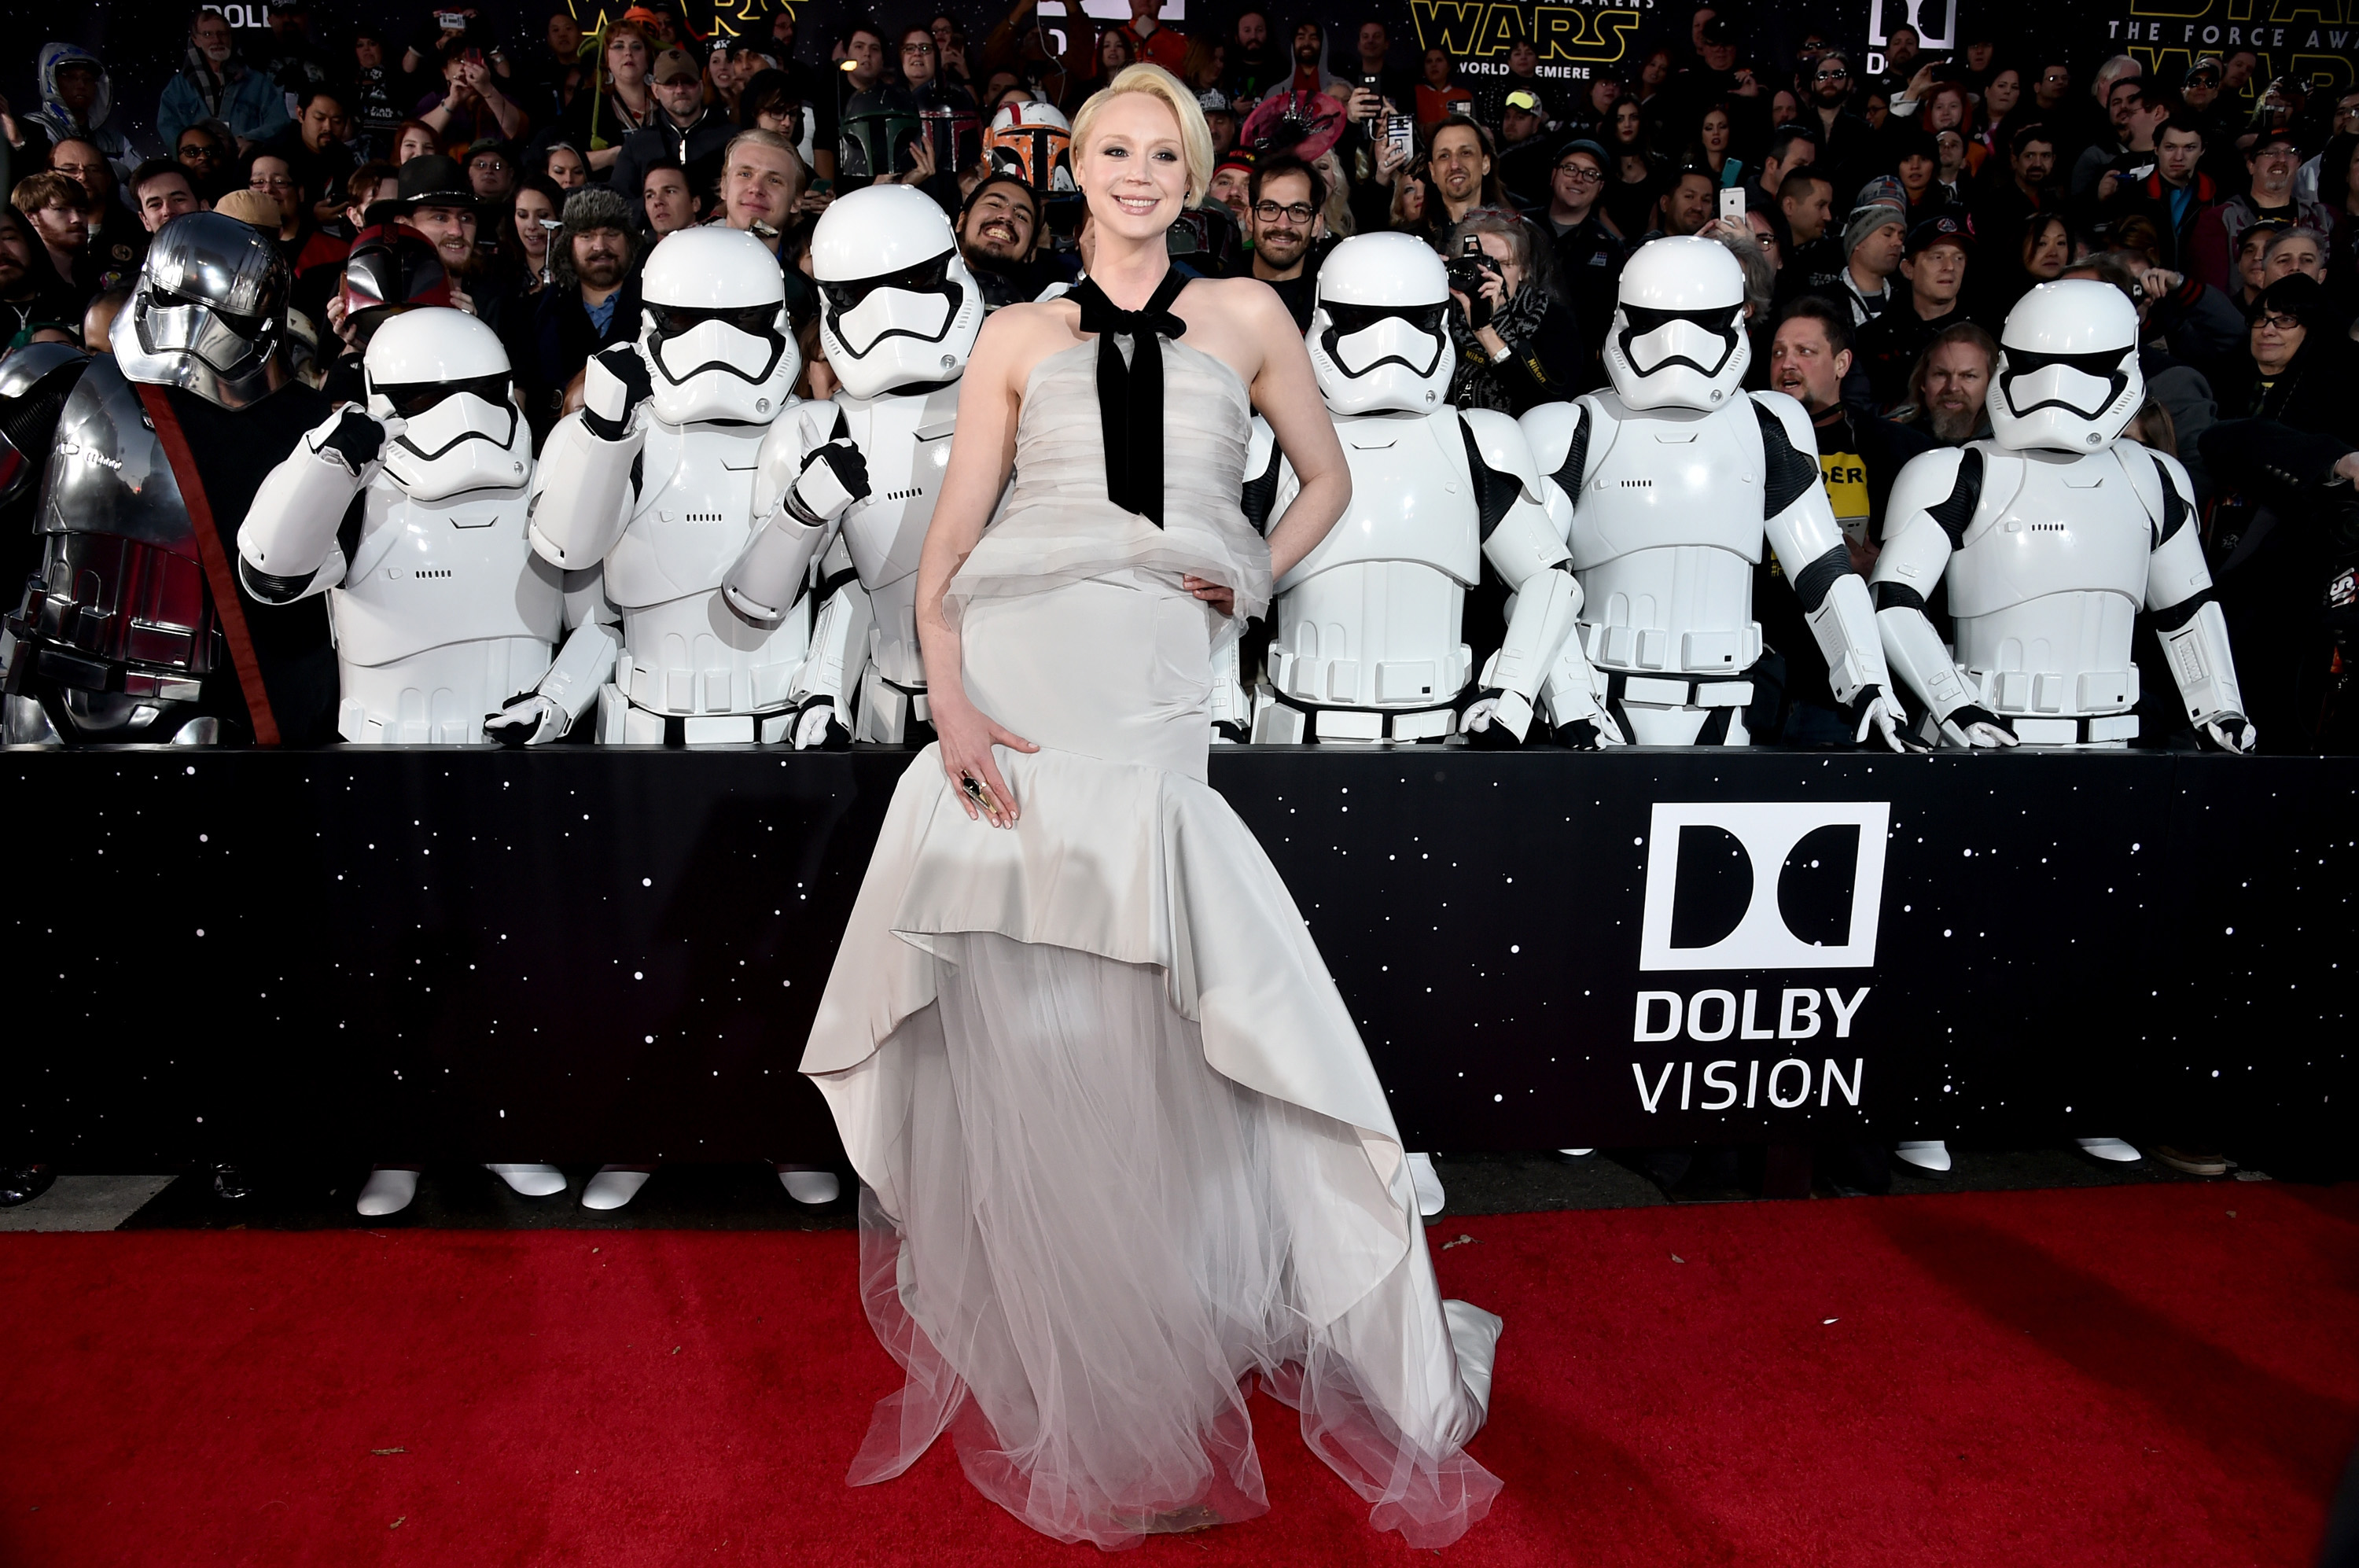 Gwendoline Christie Towers As Phasma In Star Wars The Force